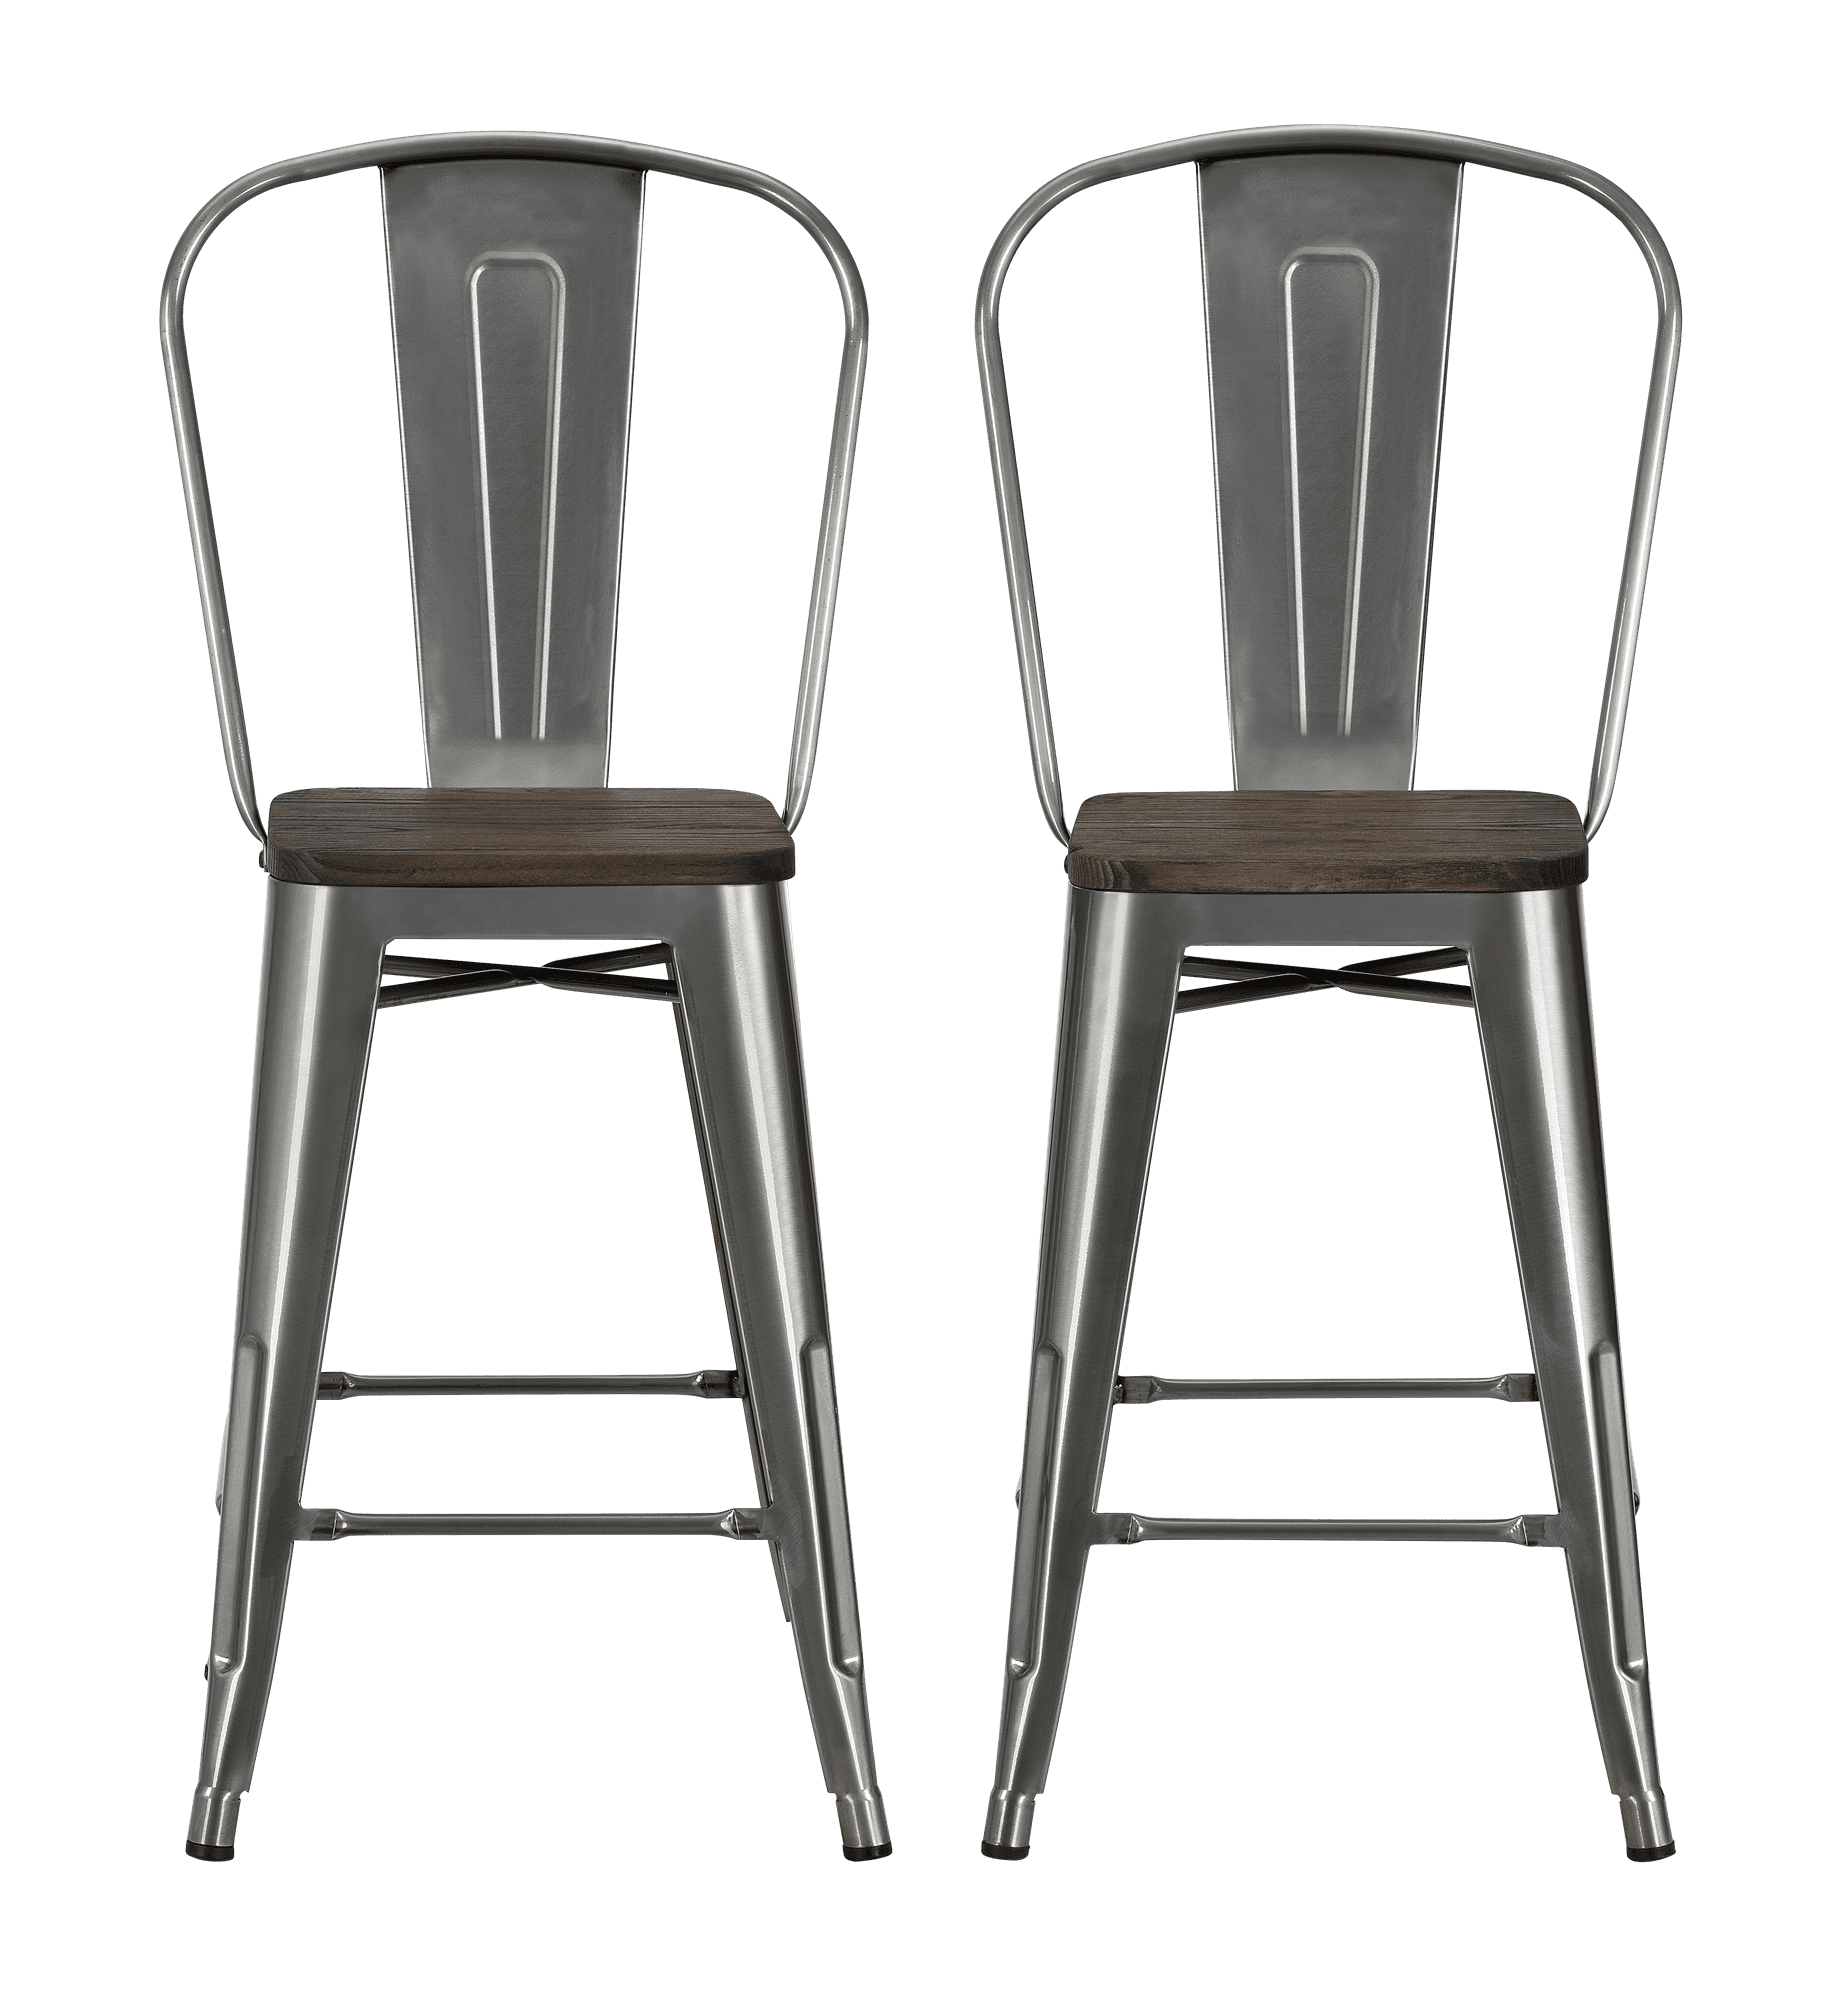 Swell Dhp Luxor 24 Metal Counter Stool With Wood Seat Set Of 2 Gmtry Best Dining Table And Chair Ideas Images Gmtryco